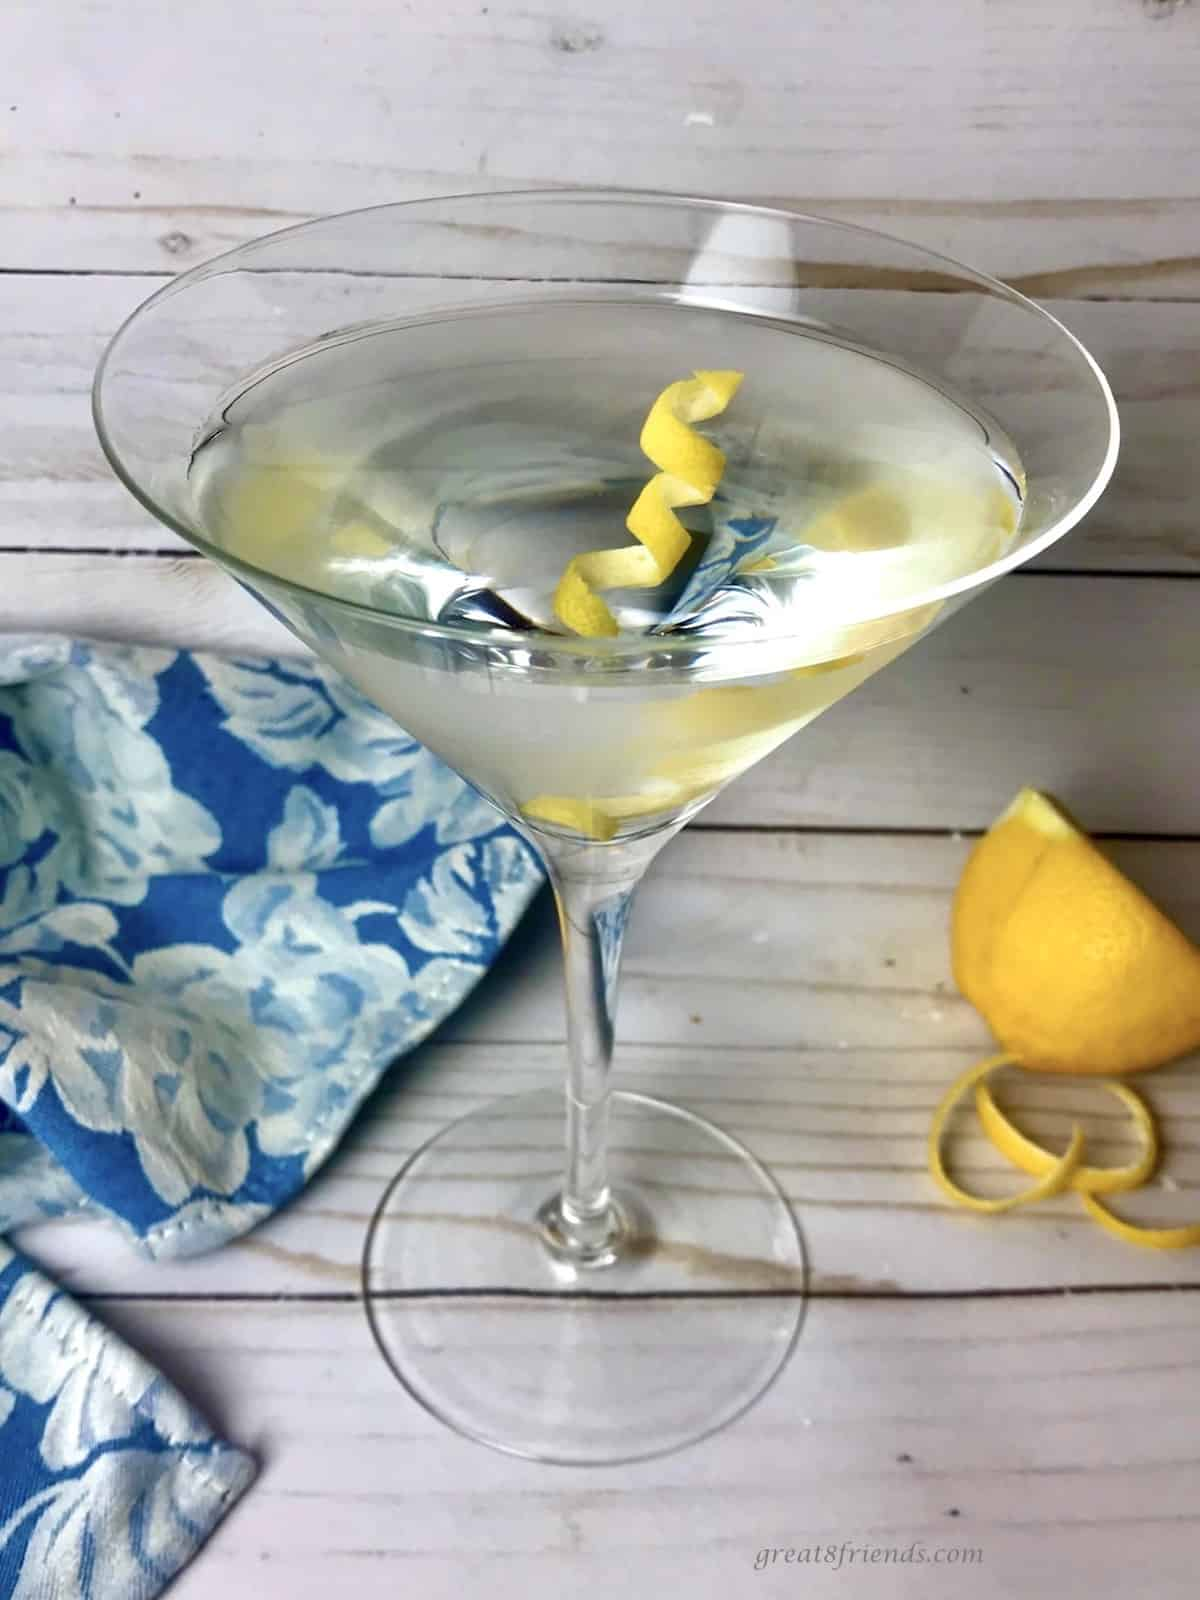 A classic gin martini with a lemon twist.